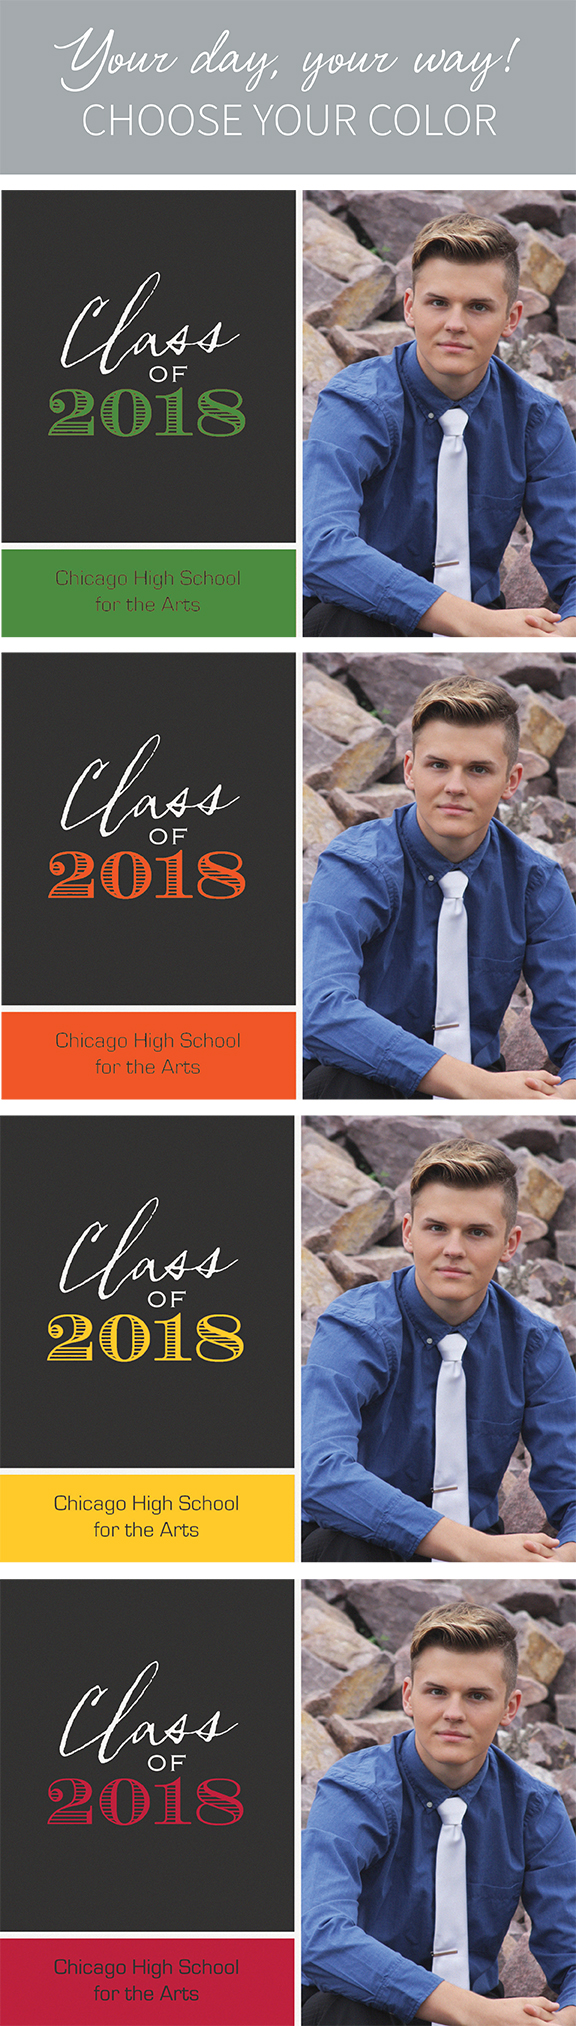 Congratulations, Grads! Celebrate your day your way by choosing the perfect color for your personalized grad announcements.